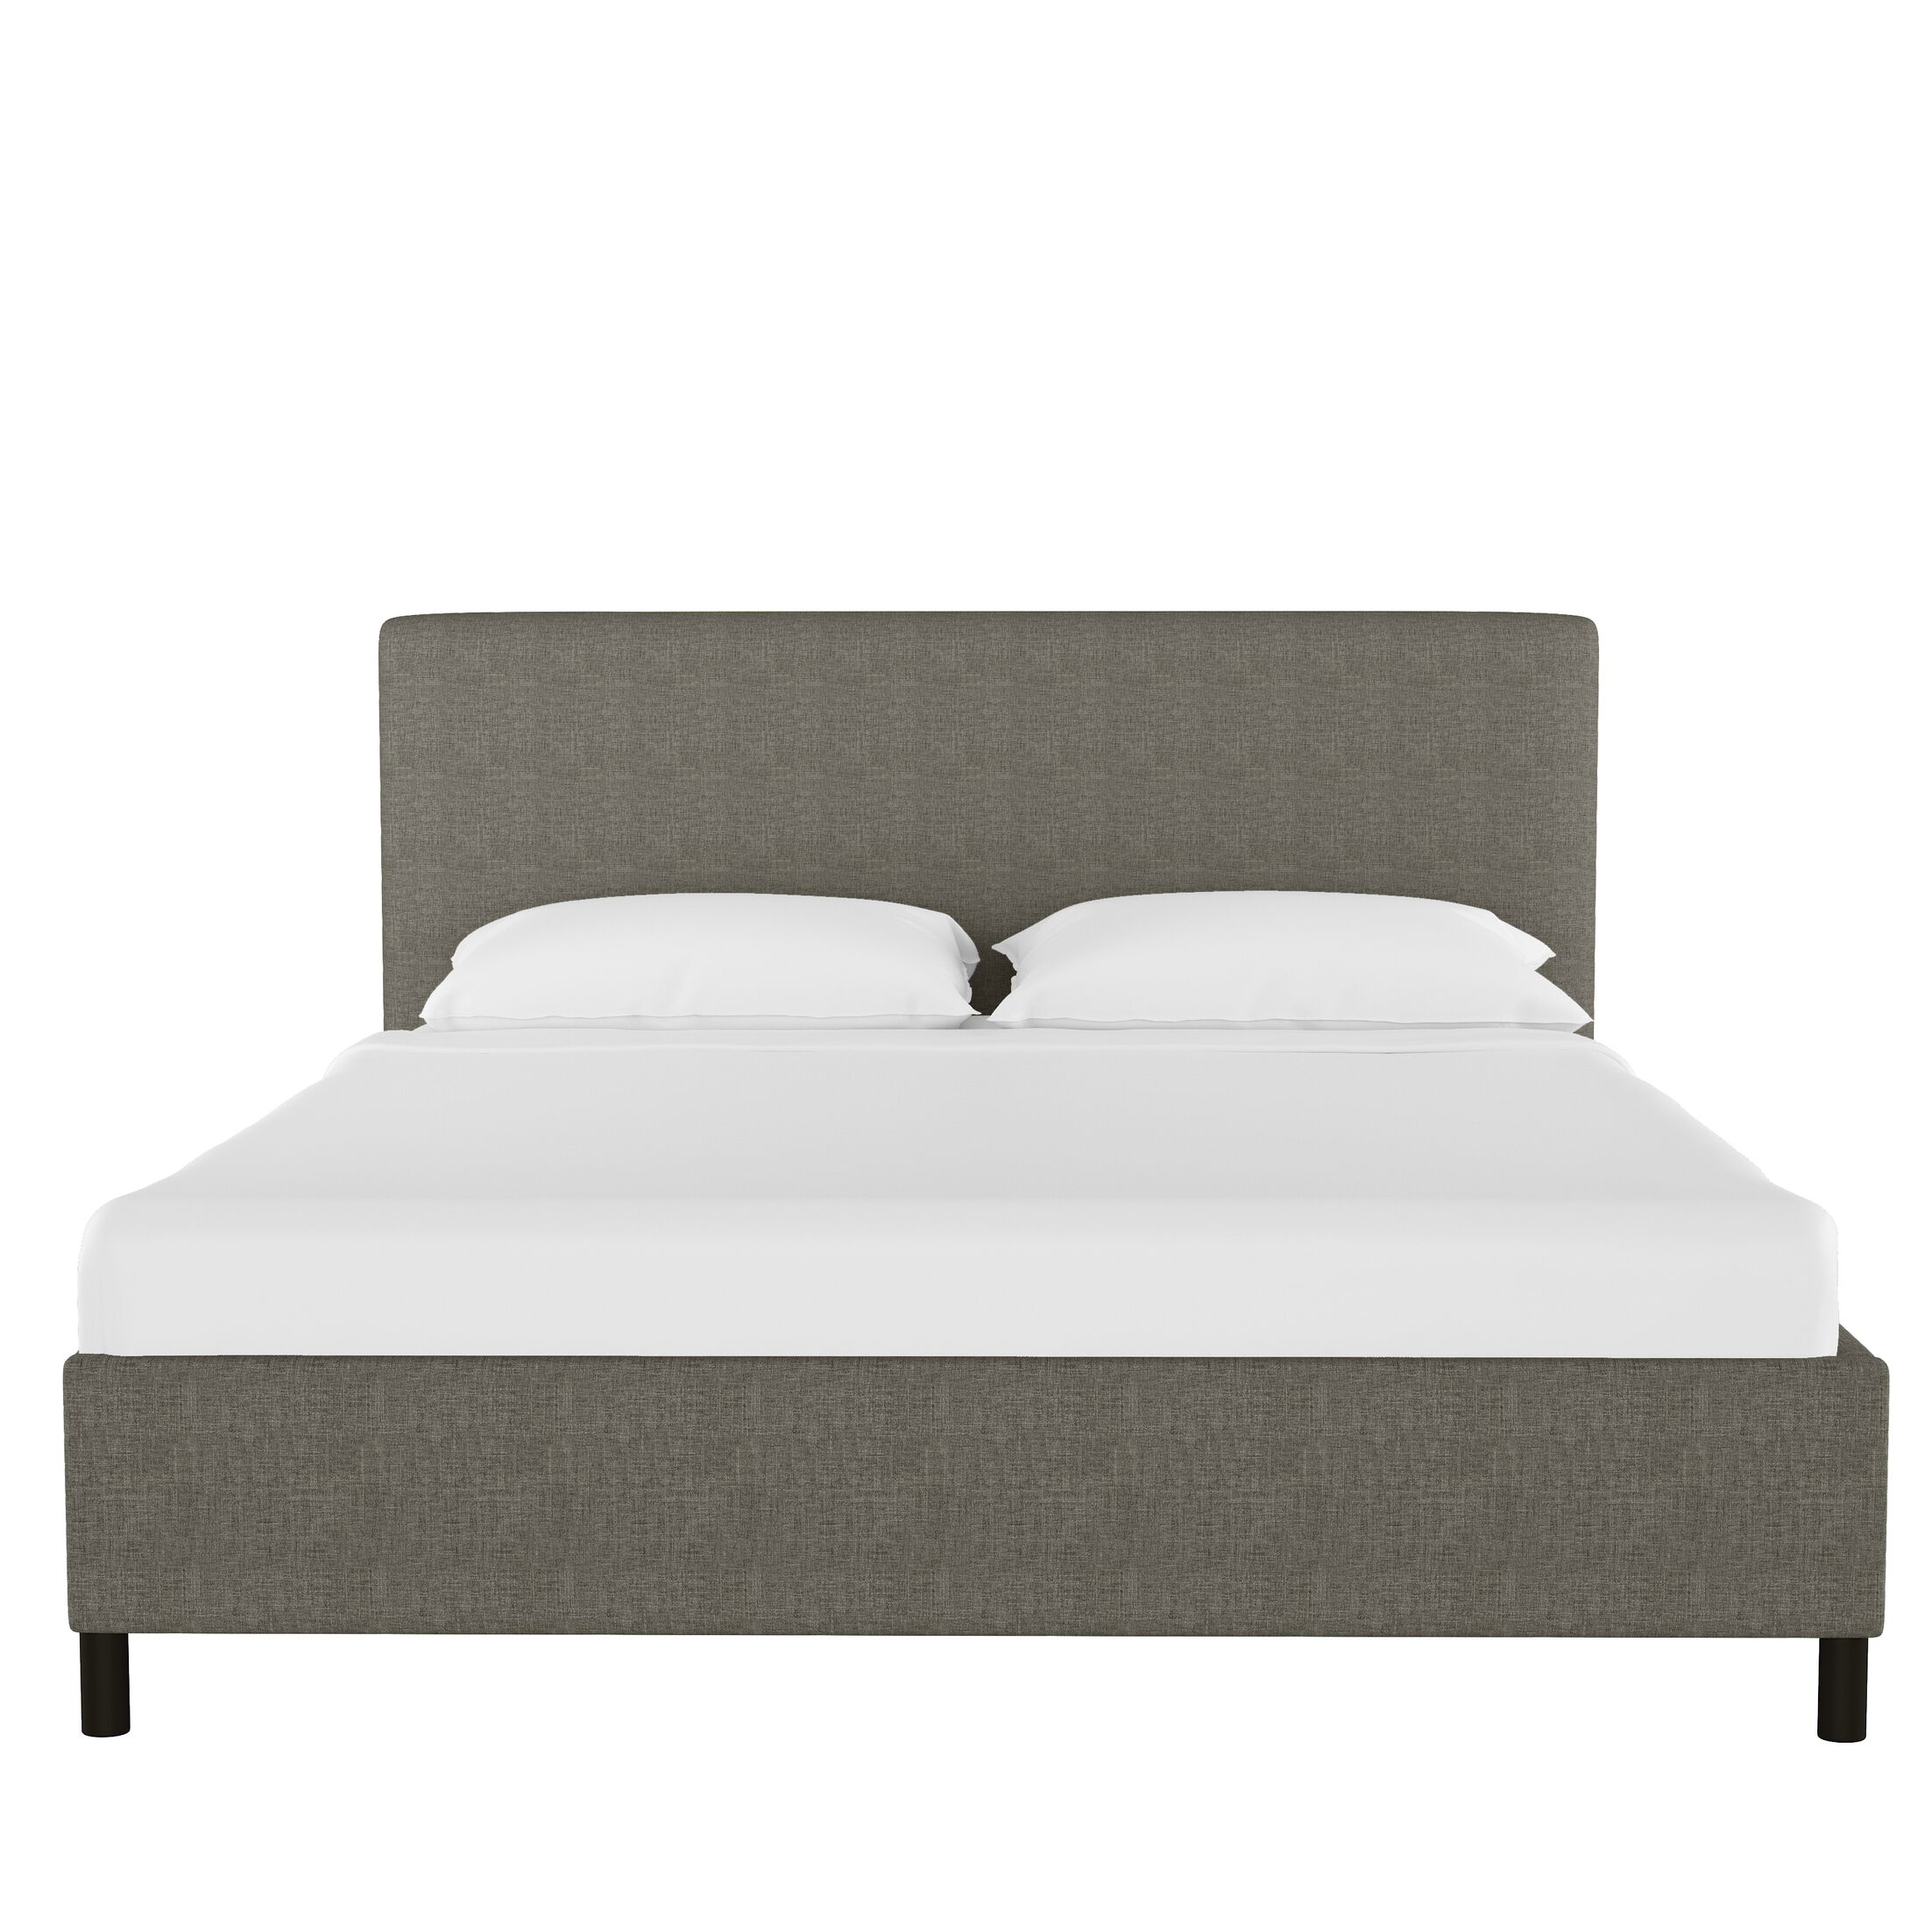 Ball Ground Upholstered Platform Bed Size: Full, Color: Charcoal